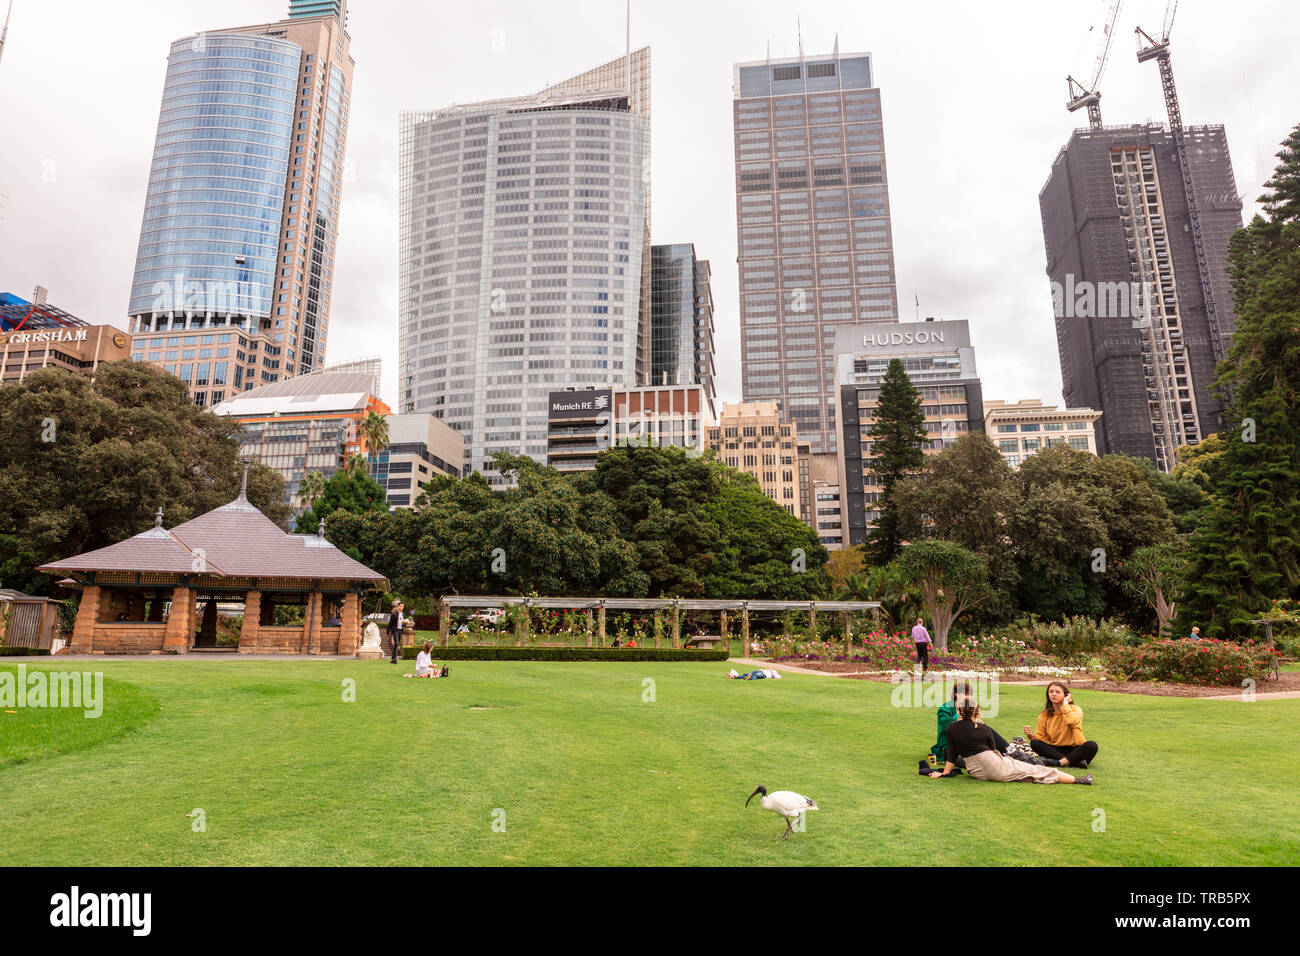 Royal Botanic Gardens city centre scene with people having picnics and enjoying company of White Ibis birds. - Stock Image